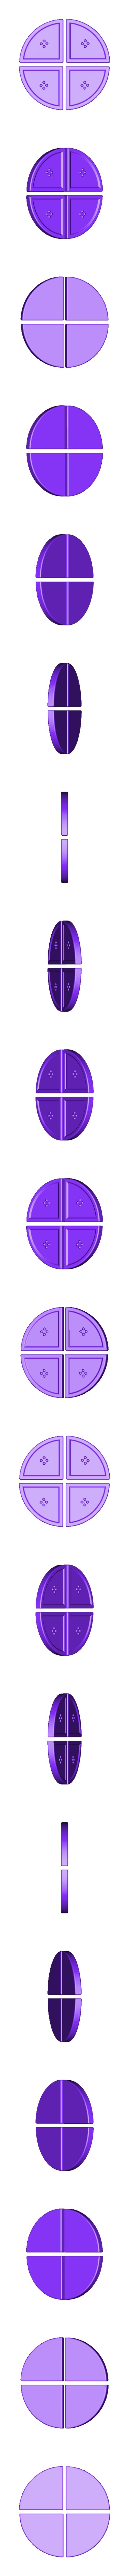 Fraction Puzzle_ Quarters.stl Download free STL file Learning fractions • 3D printing object, Rabot